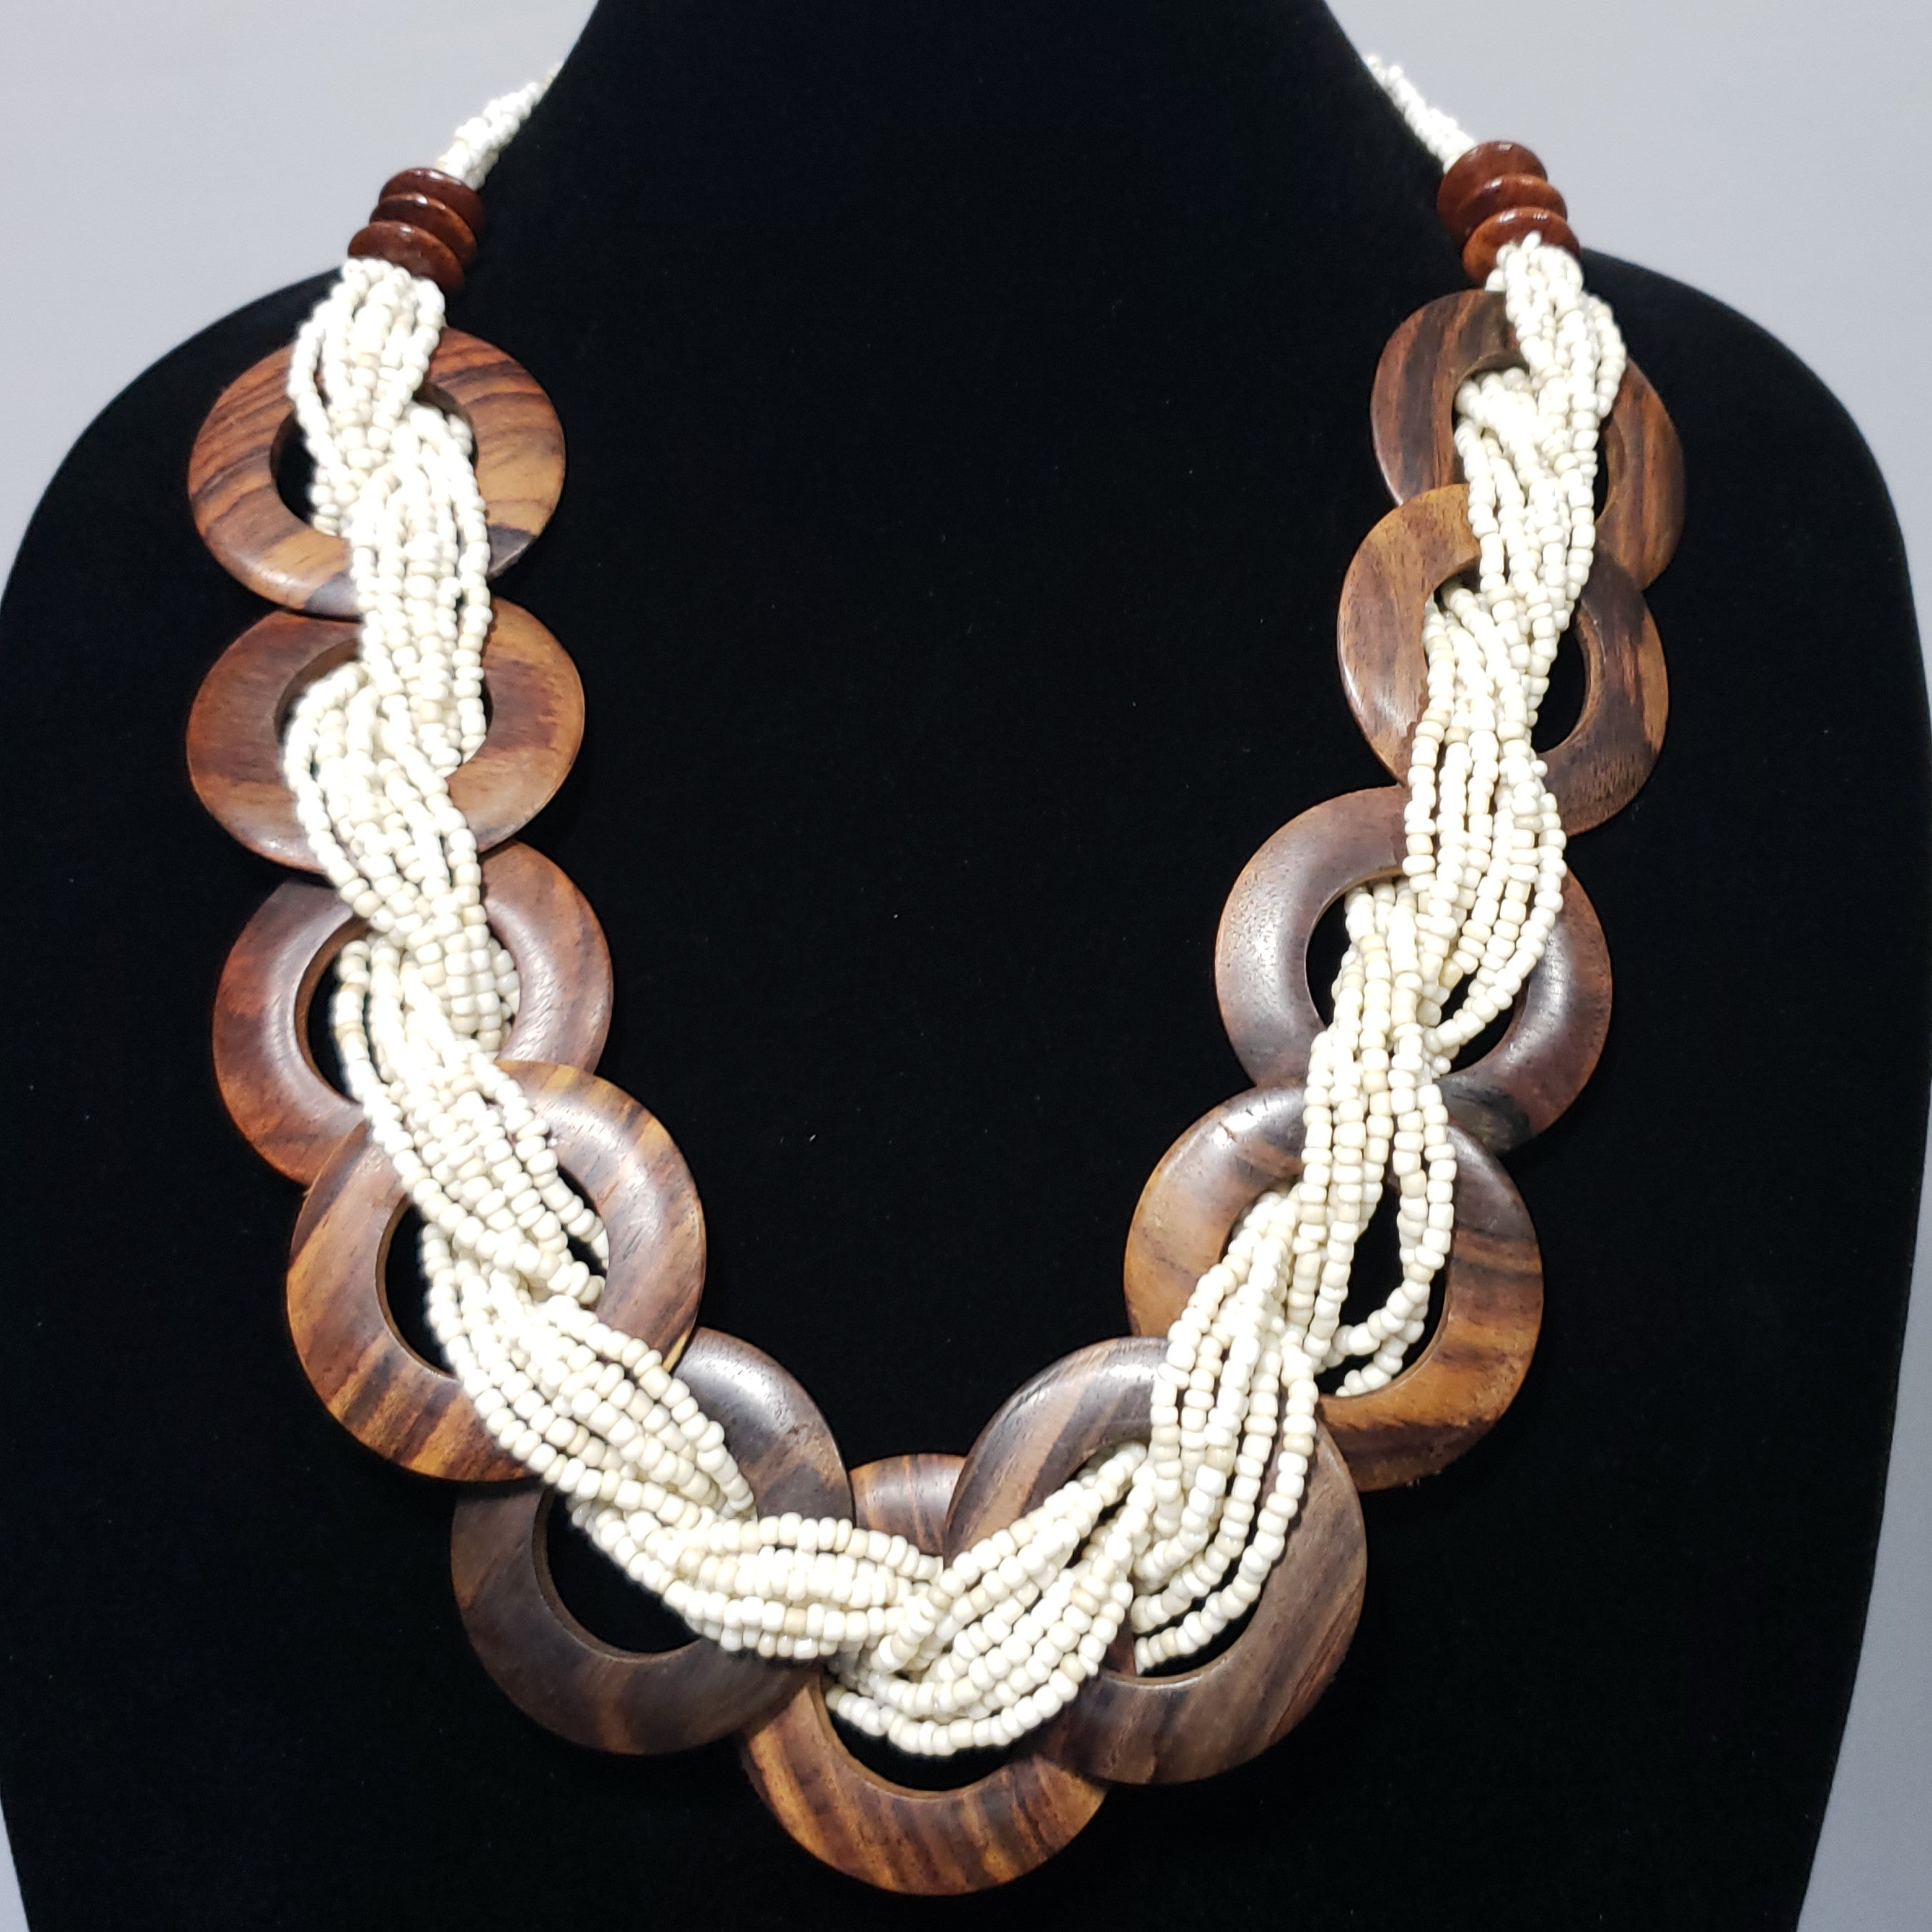 Braided Wooden Seed Bead Necklace in Cream and Chocolate Brown (20.00 In) - Houzz of DVA Boutique